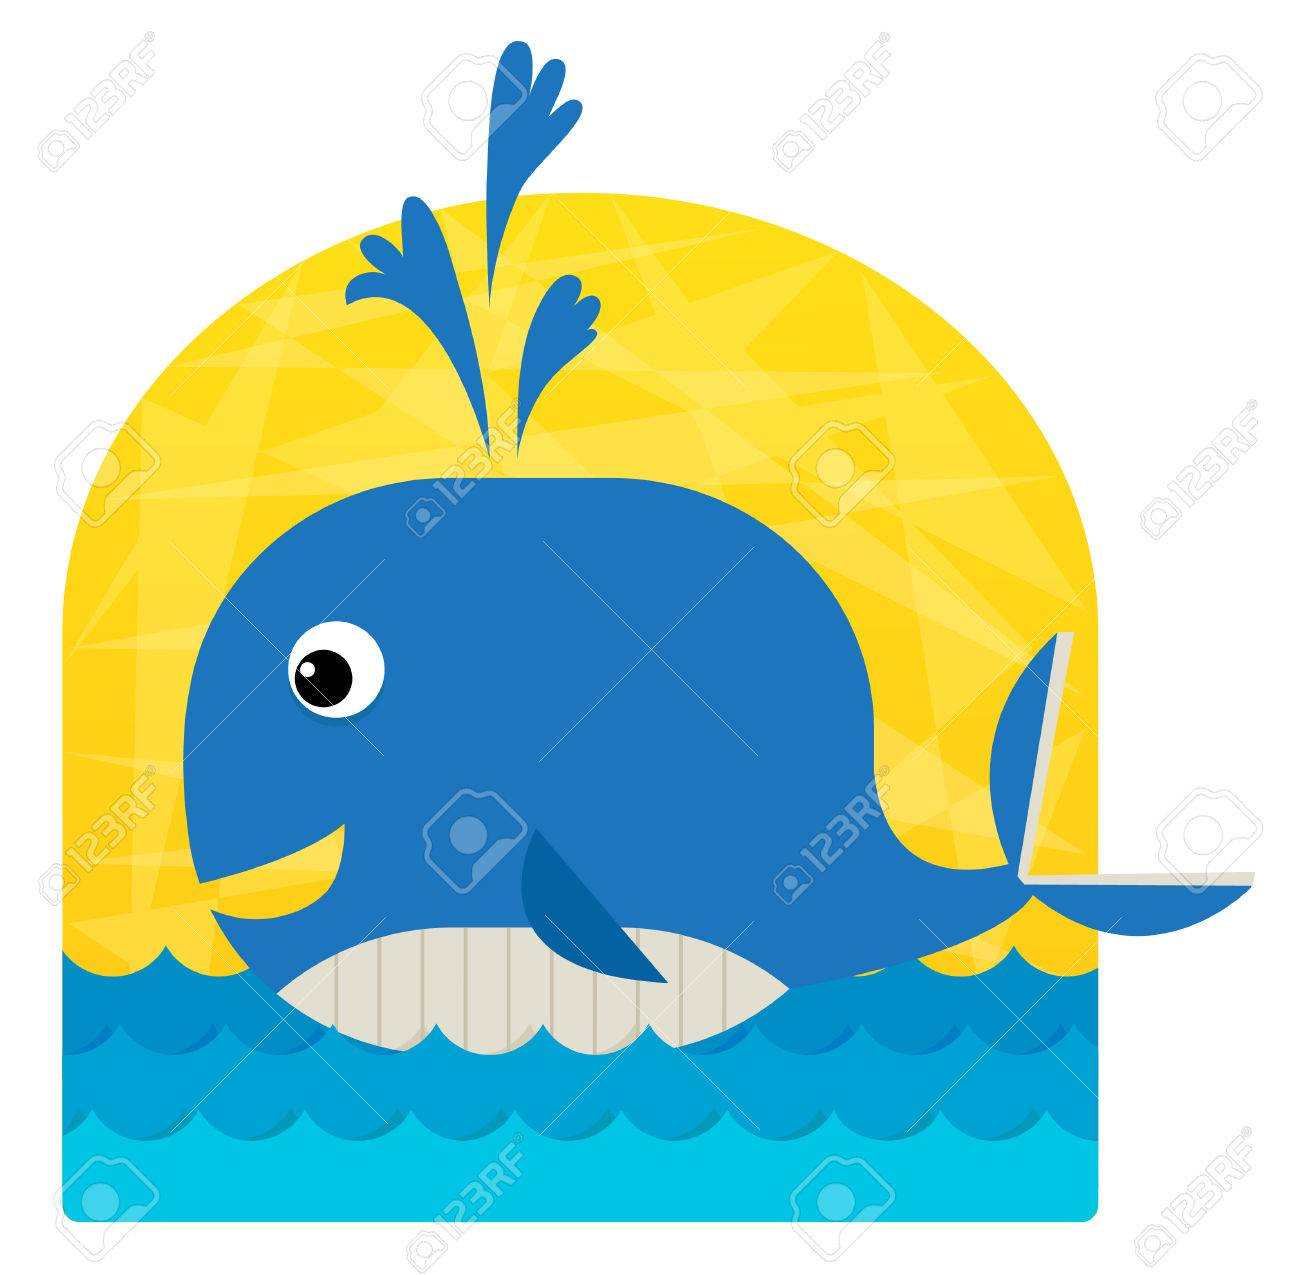 baby whale cute clip art of a baby whale swimming in the ocean rh 123rf com